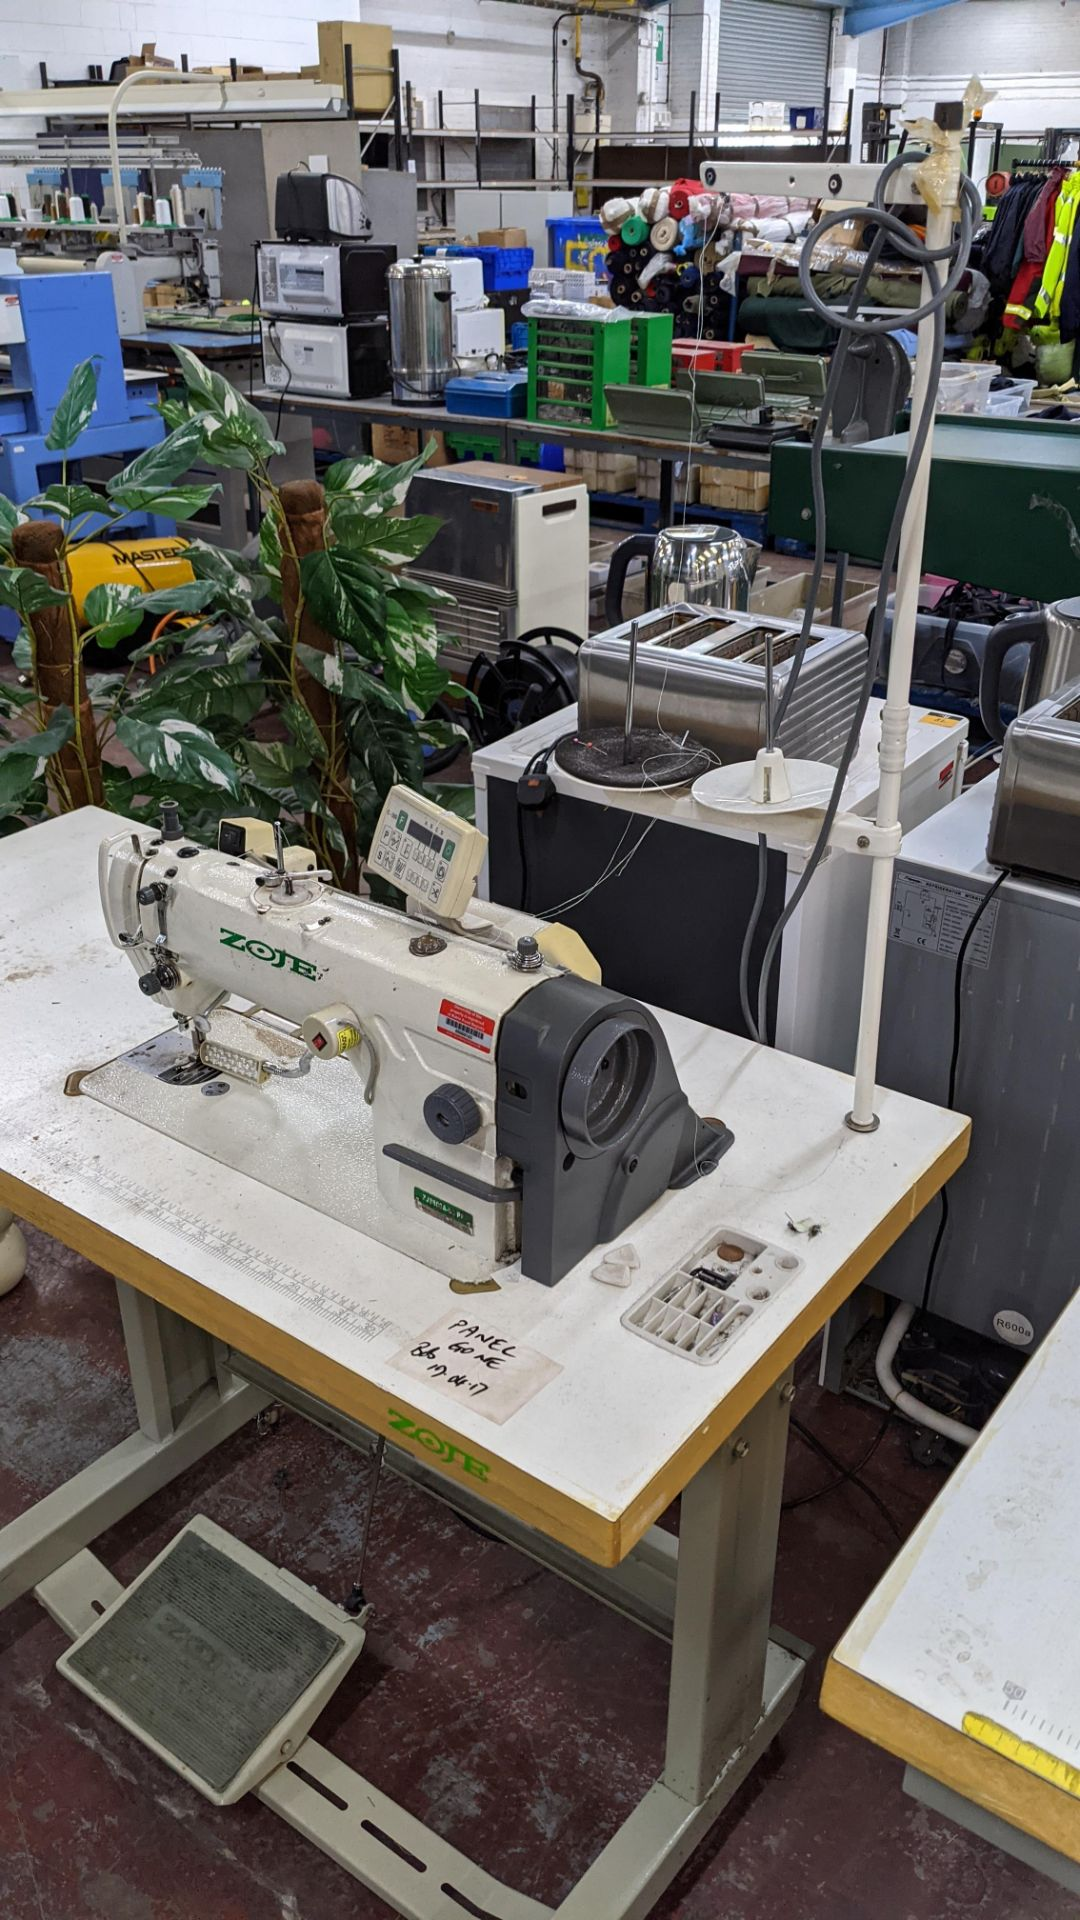 Zoje model ZJ8800A-D3/PF sewing machine with model C-200 digital controller - Image 3 of 15